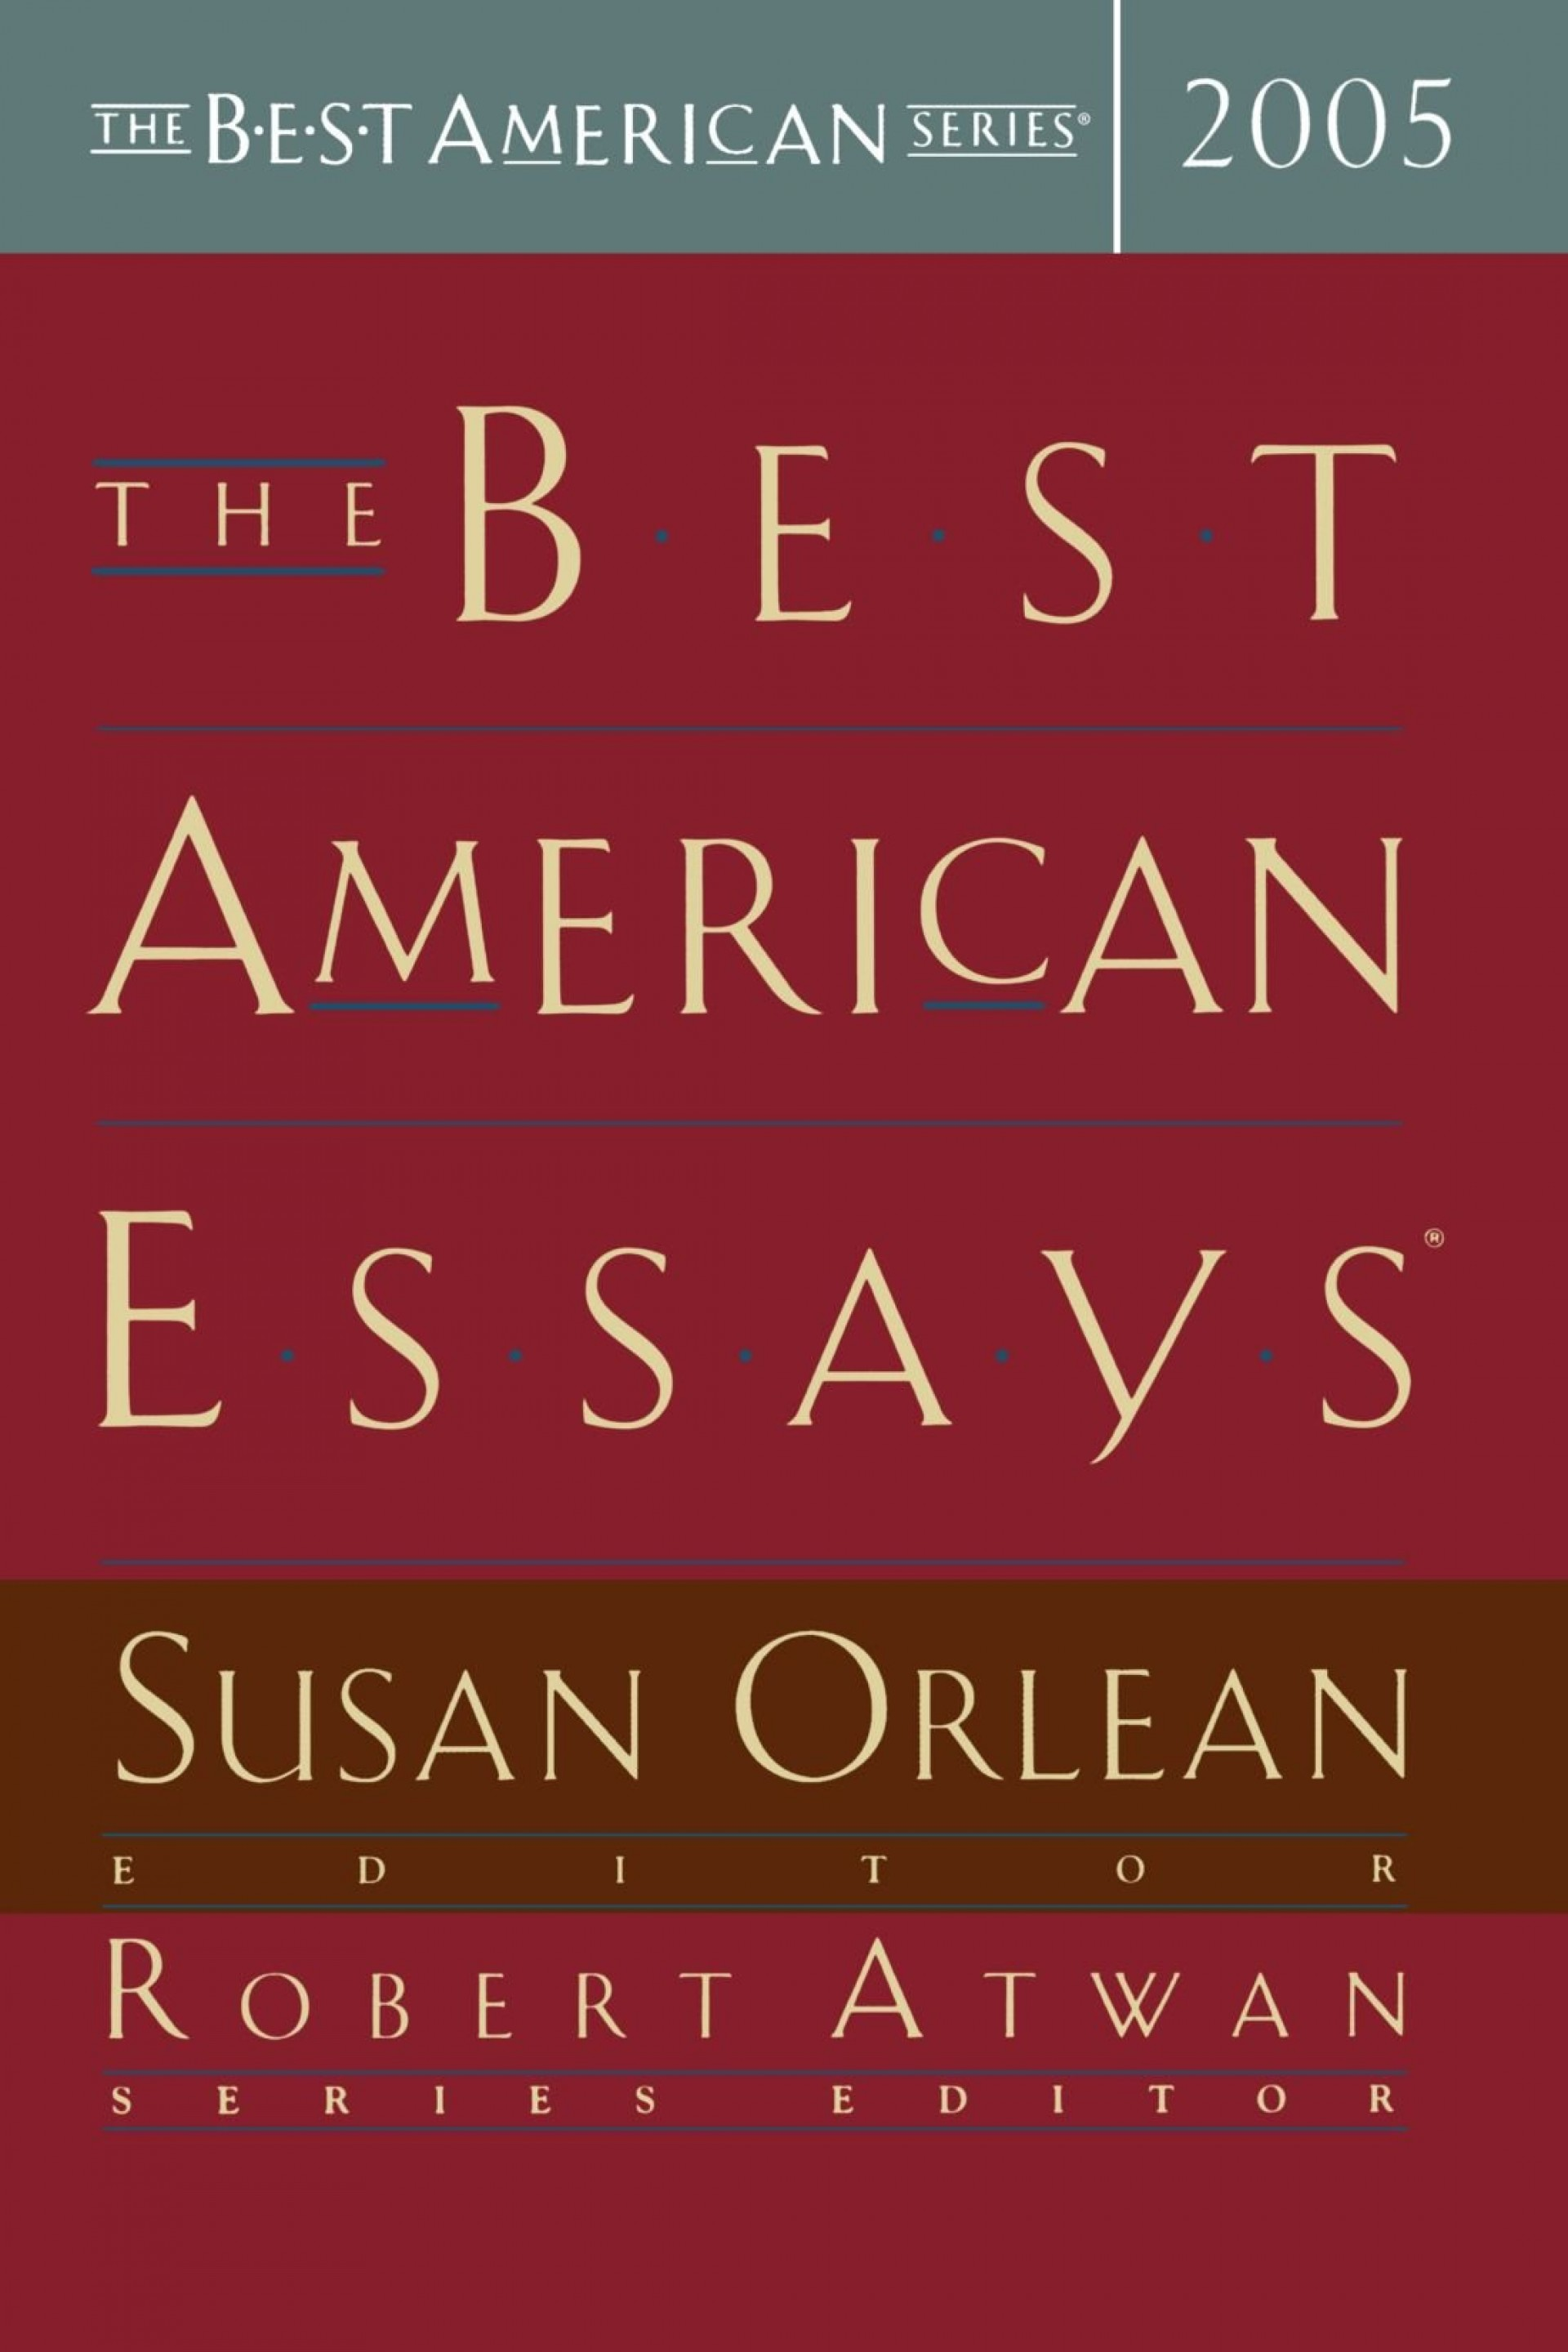 009 Essay Example 61eba7rjfxl The Best American Wonderful Essays 2013 Pdf Download Of Century Sparknotes 2017 1920